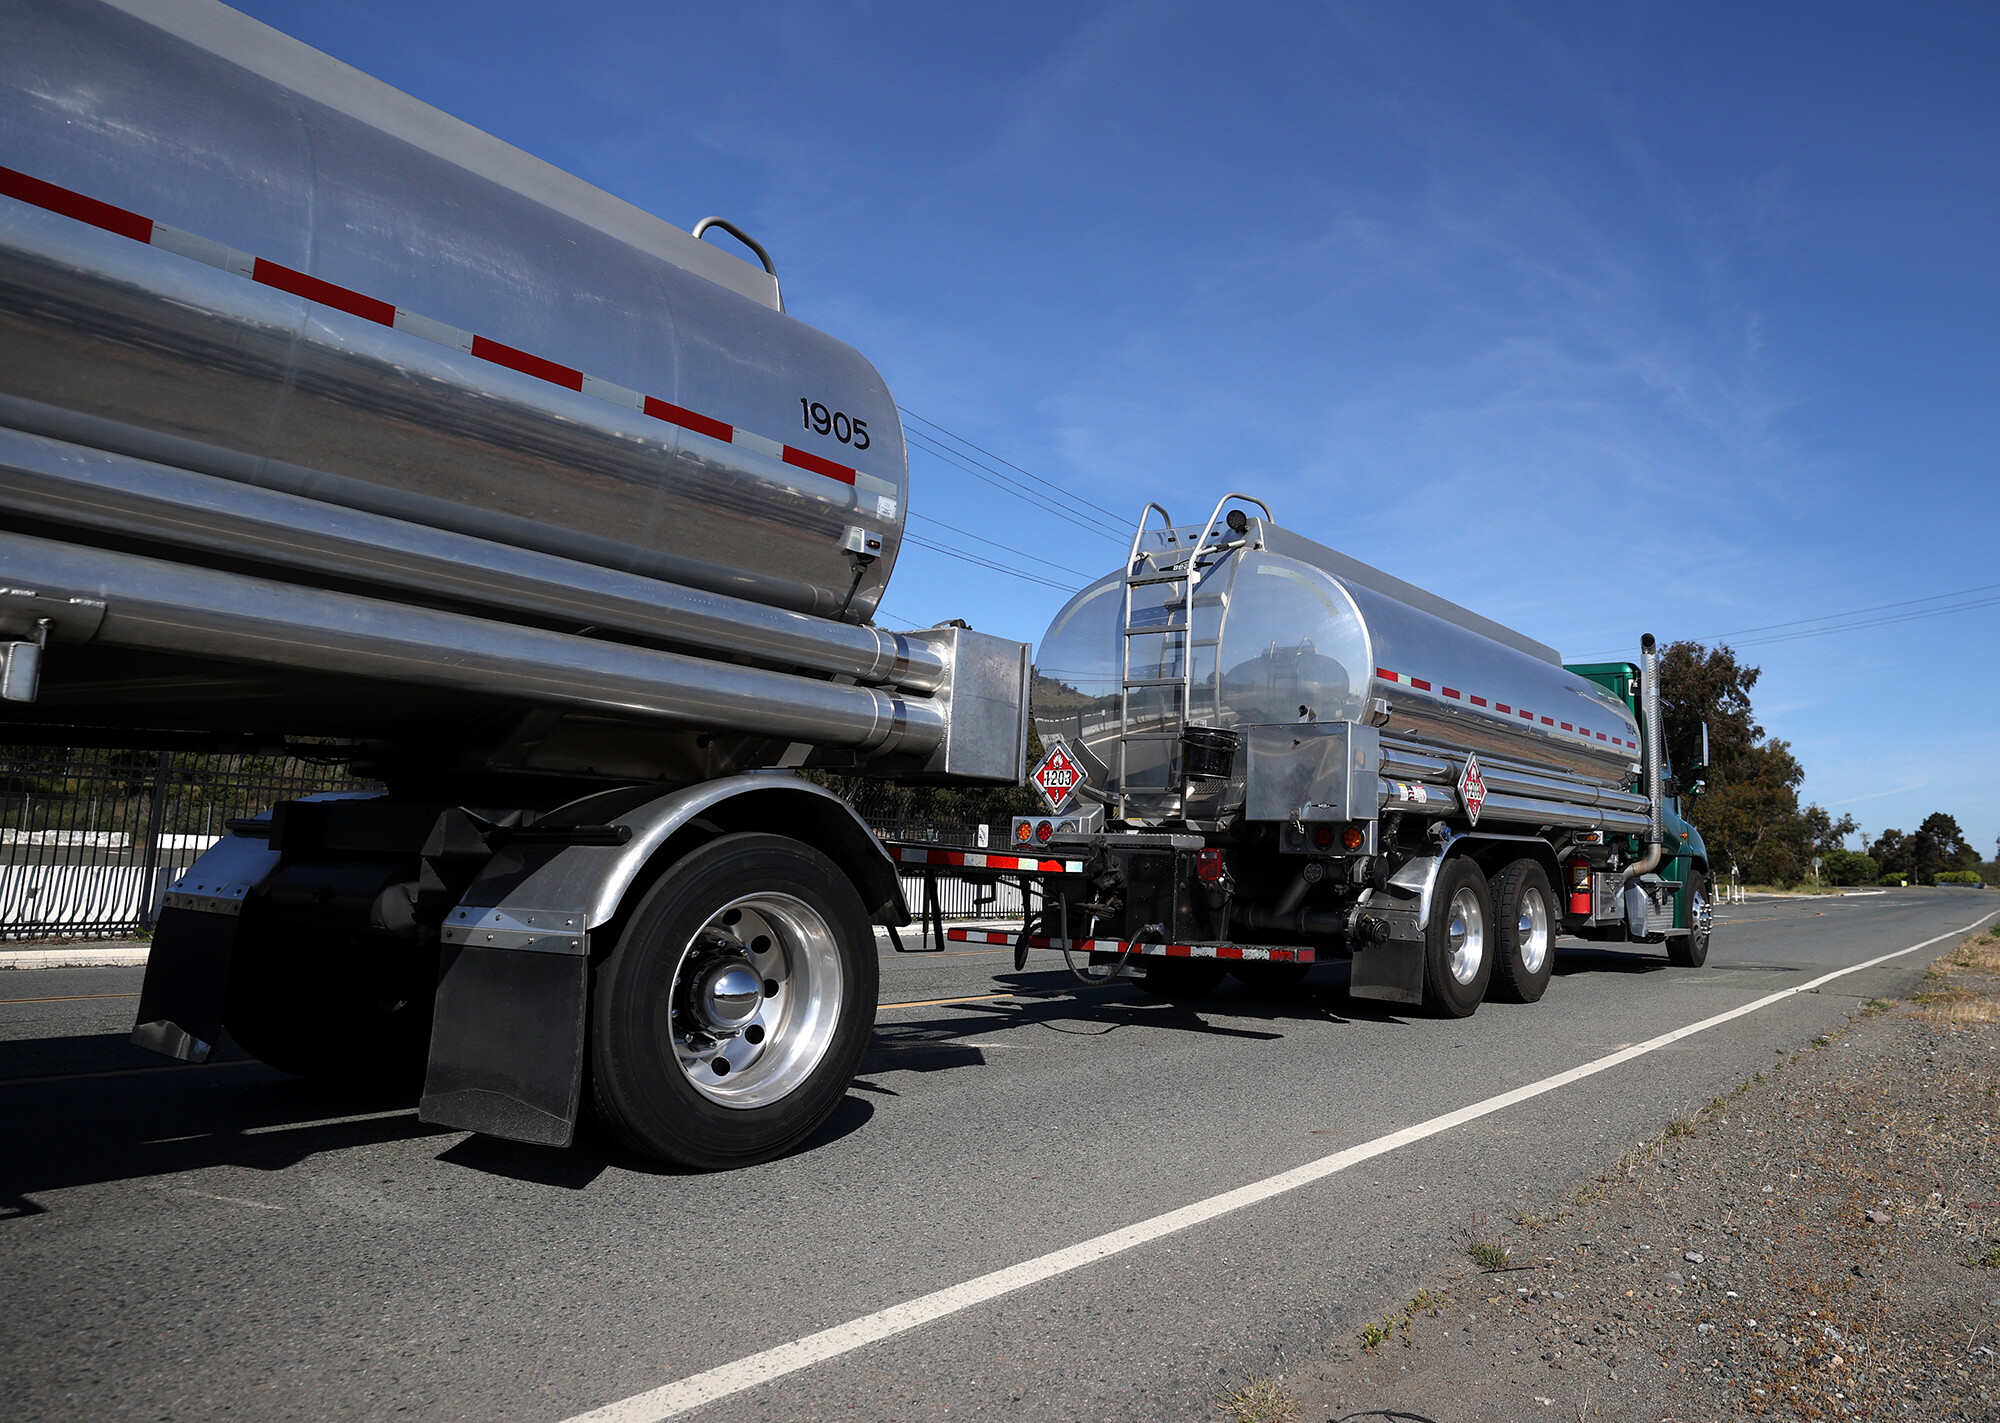 <i>Justin Sullivan/Getty Images</i><br/>It's the shortage of tank truck drivers coupled with rising demand that is causing supply chain bottlenecks and shortages.